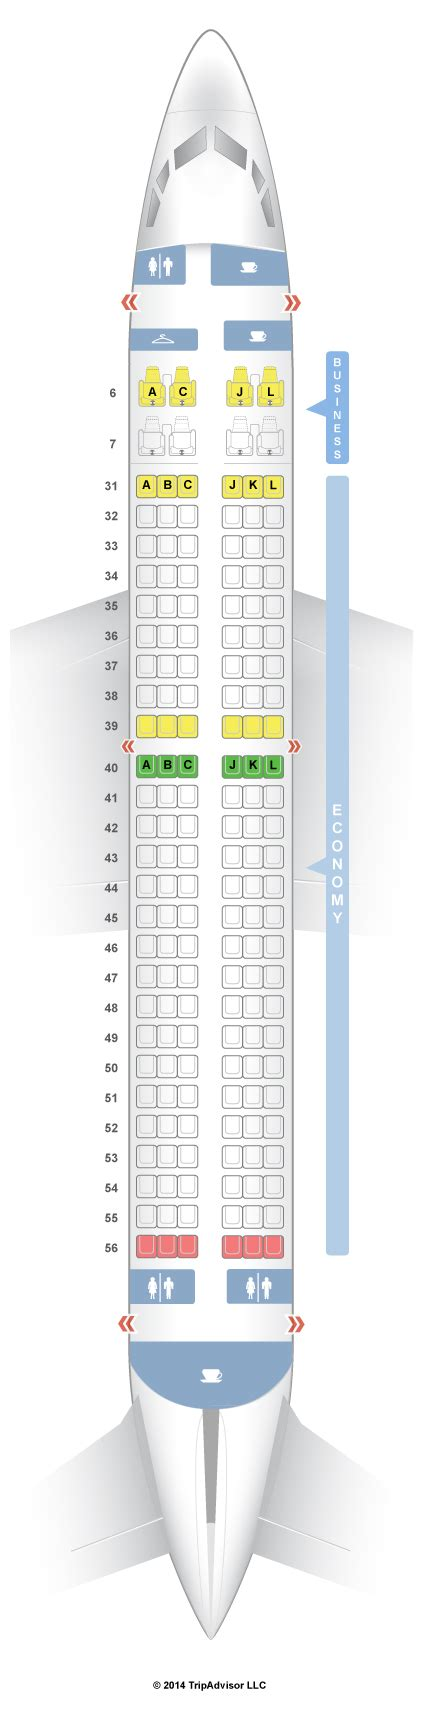 china eastern seat selection boeing 737 800 seating plan brokeasshome